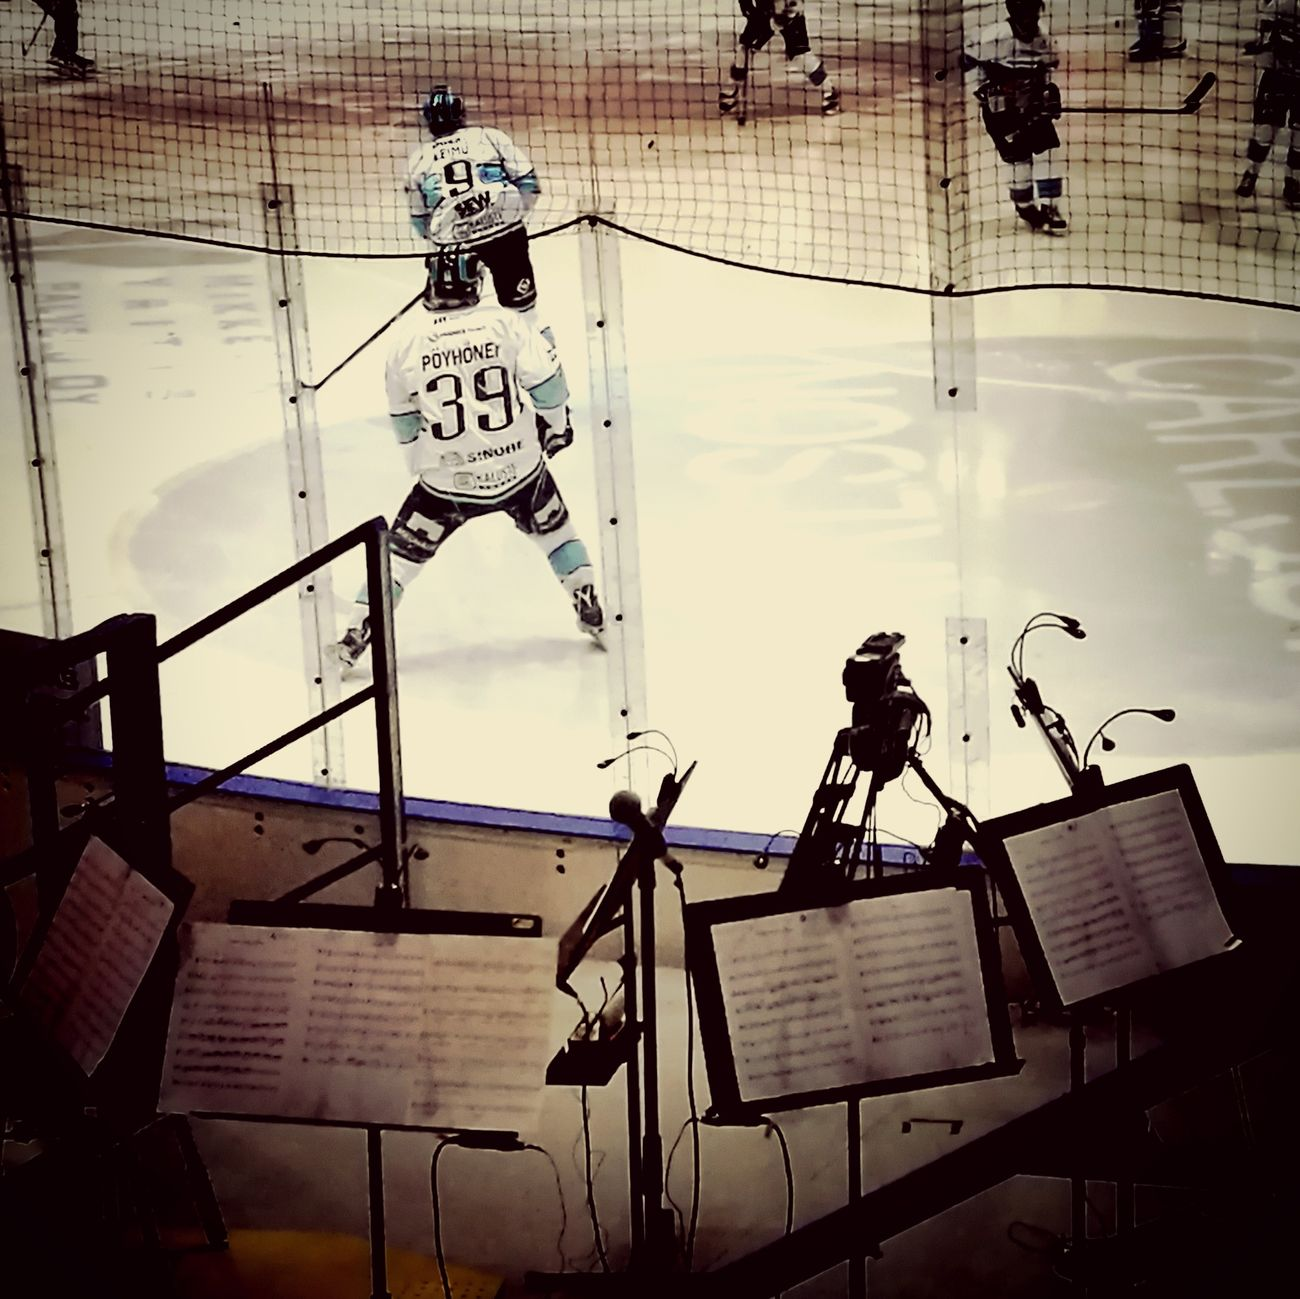 Time to play Ice Hockey Music Sports Culture Entertainment Having A Good Time Lahti Pelicans